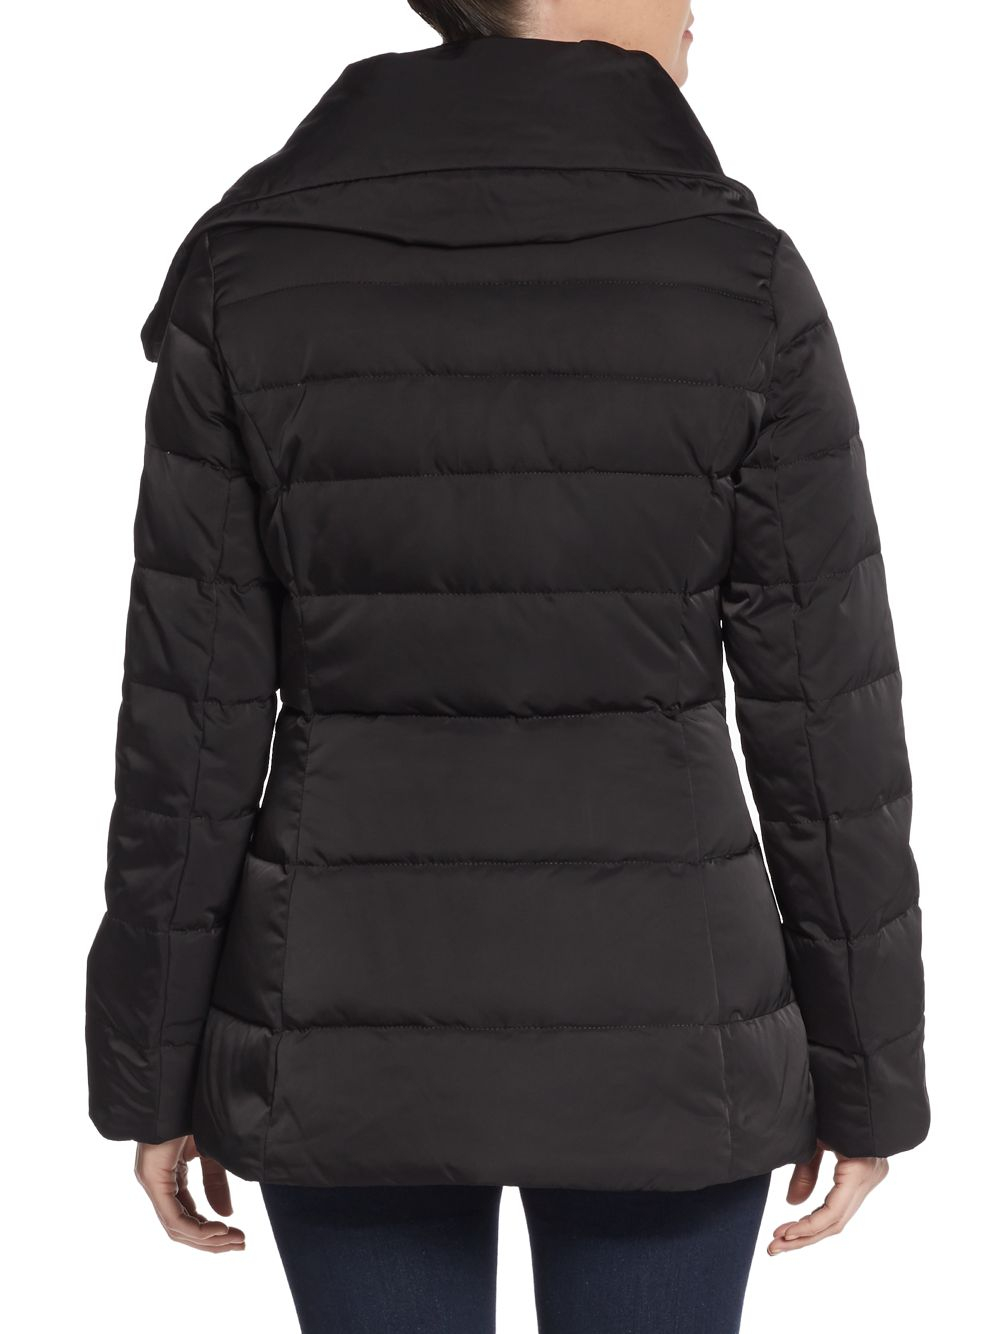 Vera Wang Asymmetrical Quilted Puffer Jacket In Black Lyst